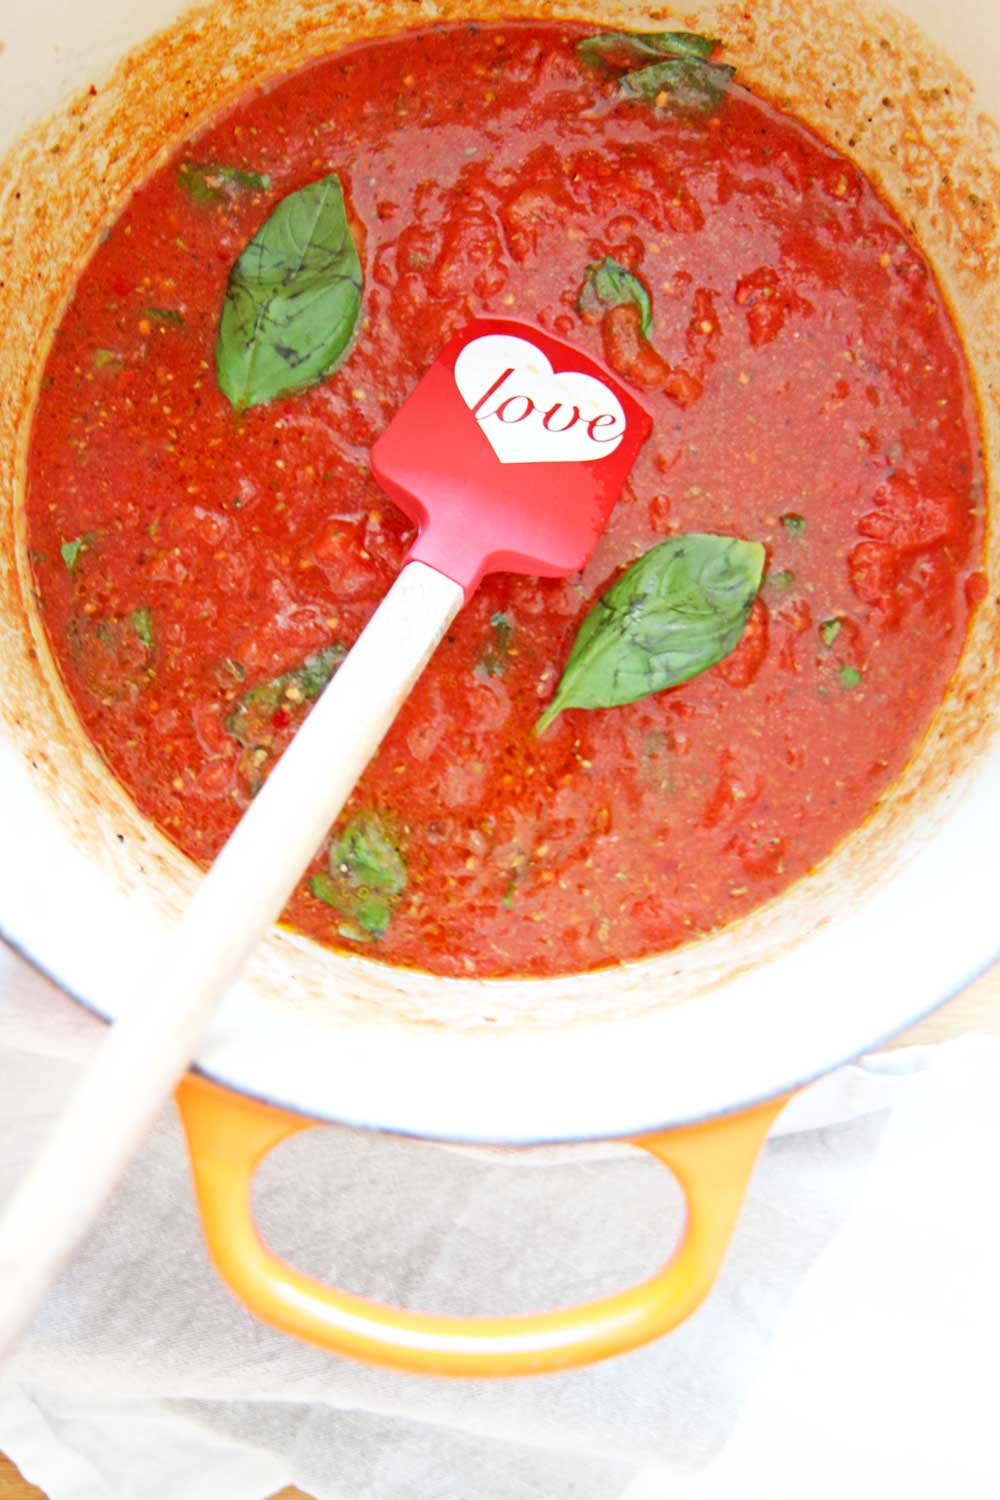 How To Make 5 Ingredient Pantry Marinara. Canned tomatoes, garlic powder, oregano, red pepper flakes, and fresh basil (you can use dried if needed) is all you need for a quick marinara sauce. This recipes is bright, sweet, and almost like having fresh marinara straight from the garden (but from your pantry lol). Happy Cooking! www.ChopHappy.com #marinararecipe #howtomakepastasauce